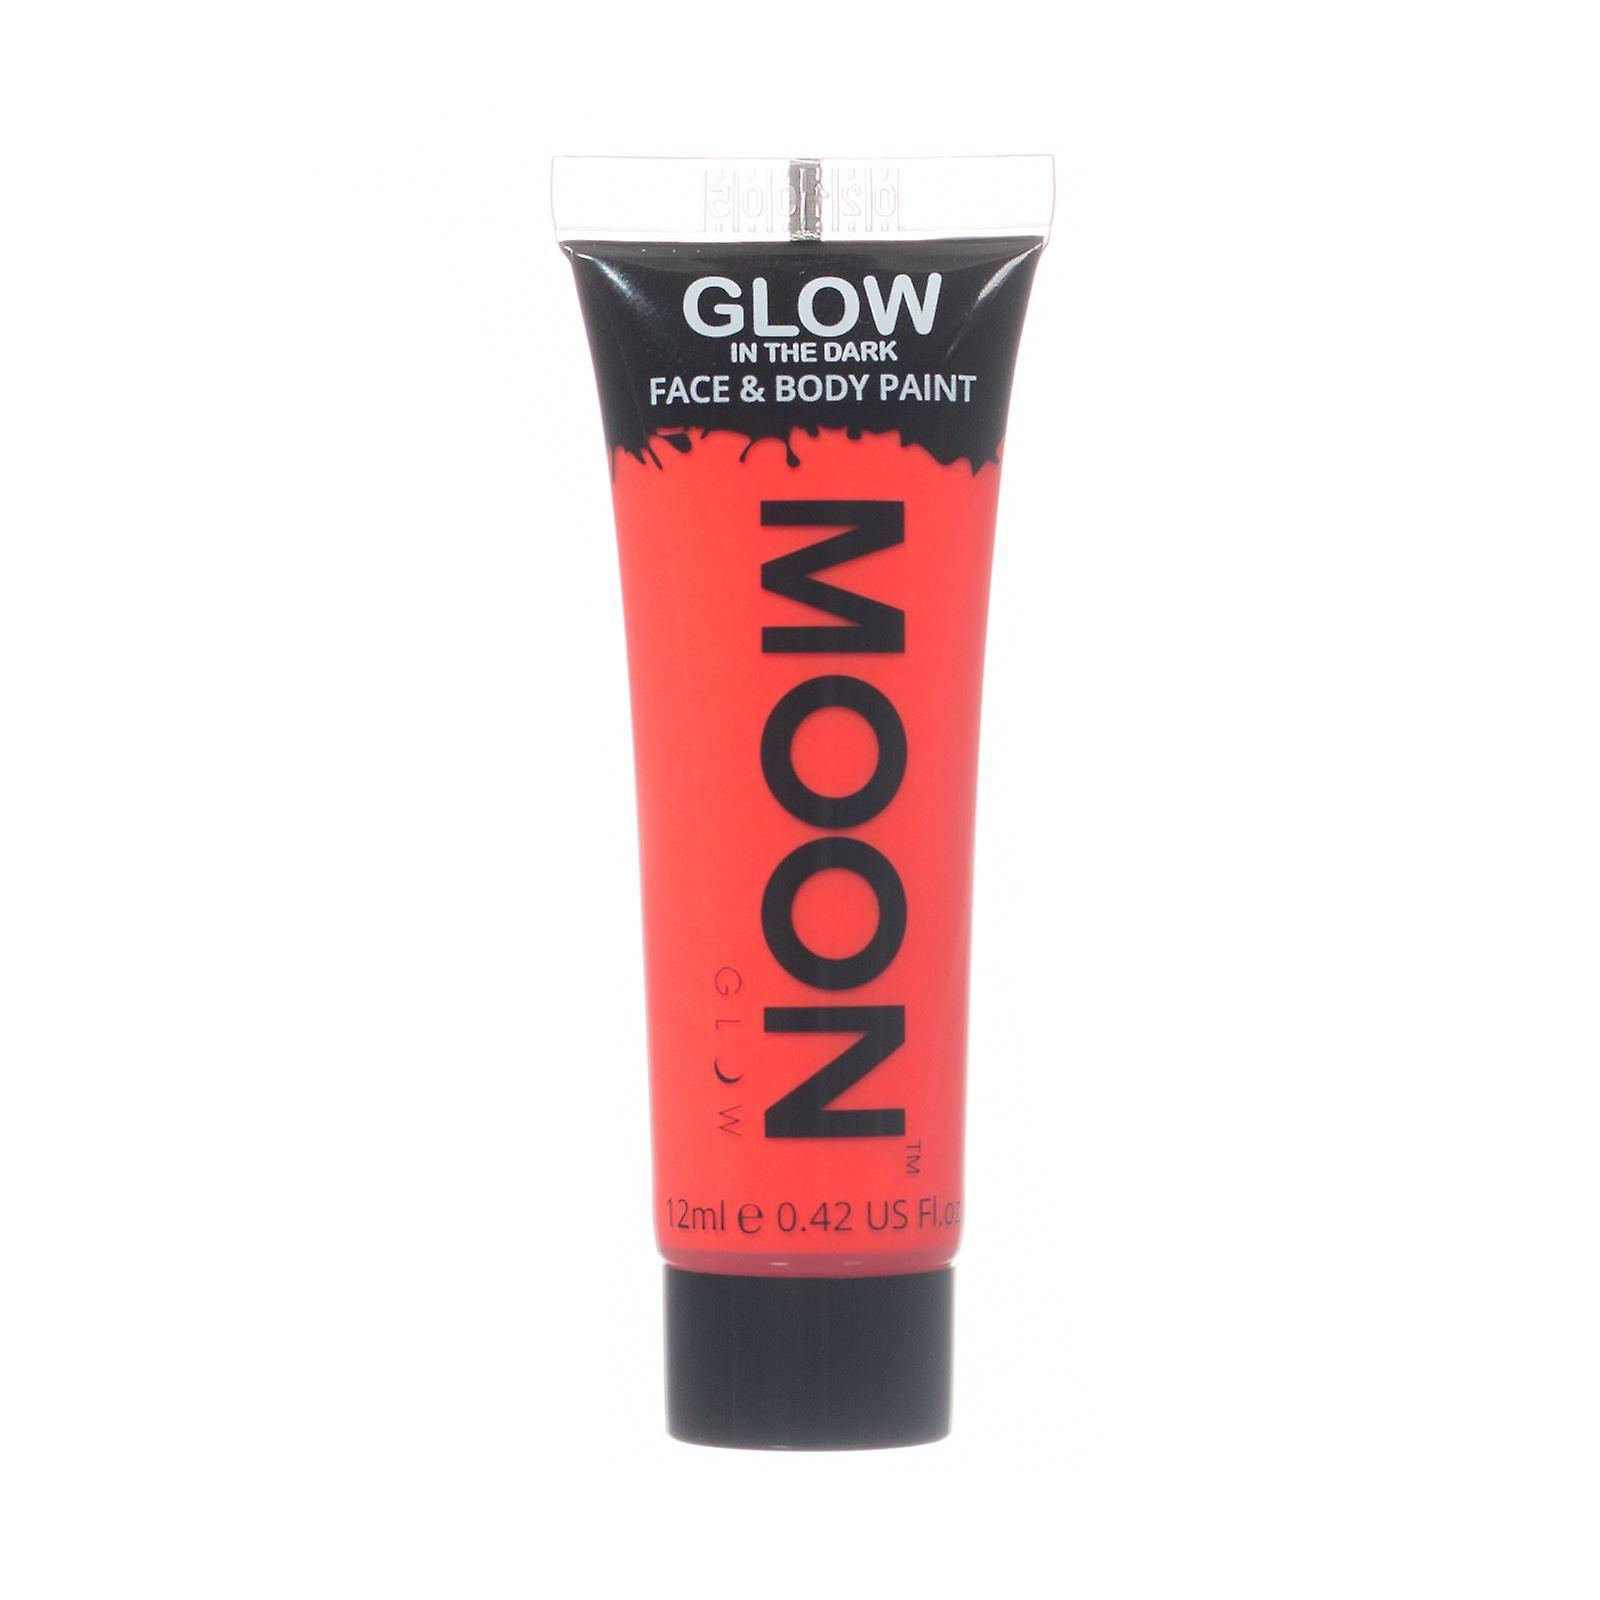 Moon Glow - 12ml Glow in the Dark Face & Body Paint - Red